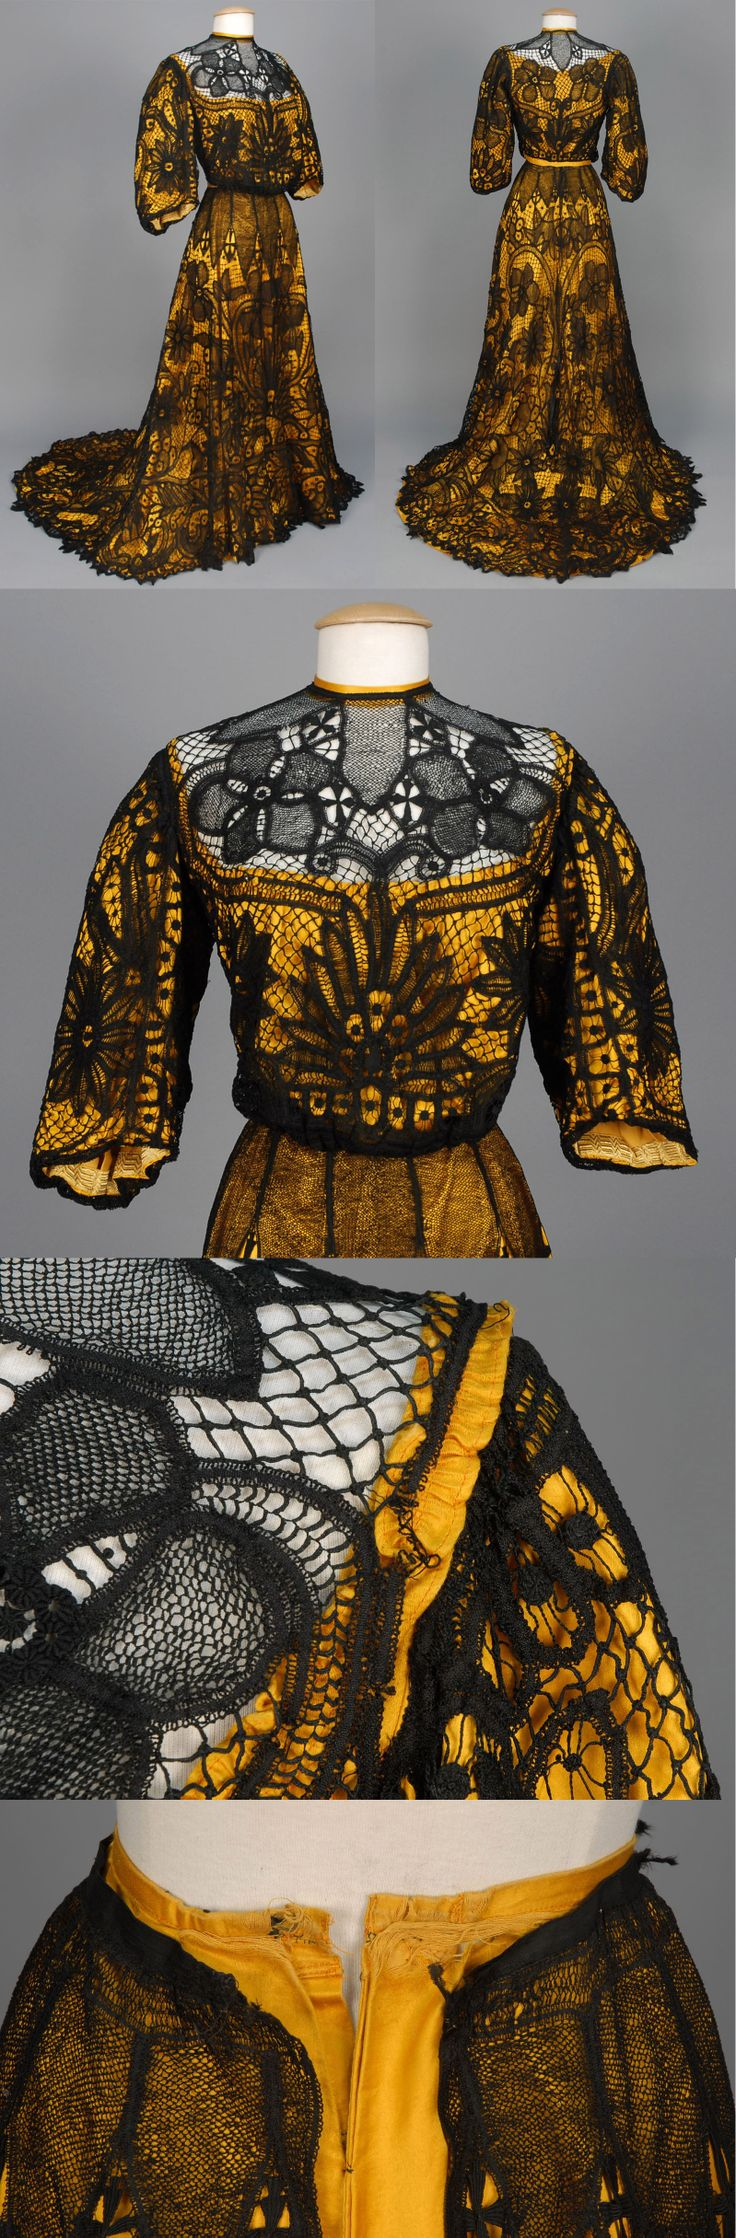 BATTENBURG LACE AFTERNOON GOWN, c. 1902.2-piece black lace over marigold cotton sateen having pigeon breasted bodice with 3/4 bell sleeve and side closure, trained skirt with deep hem flounce. B-36, W-27, L-44 with 15 inch train. (Few broken brides, waistband torn, cotton lining probably not original) good. Whitaker Auctions.